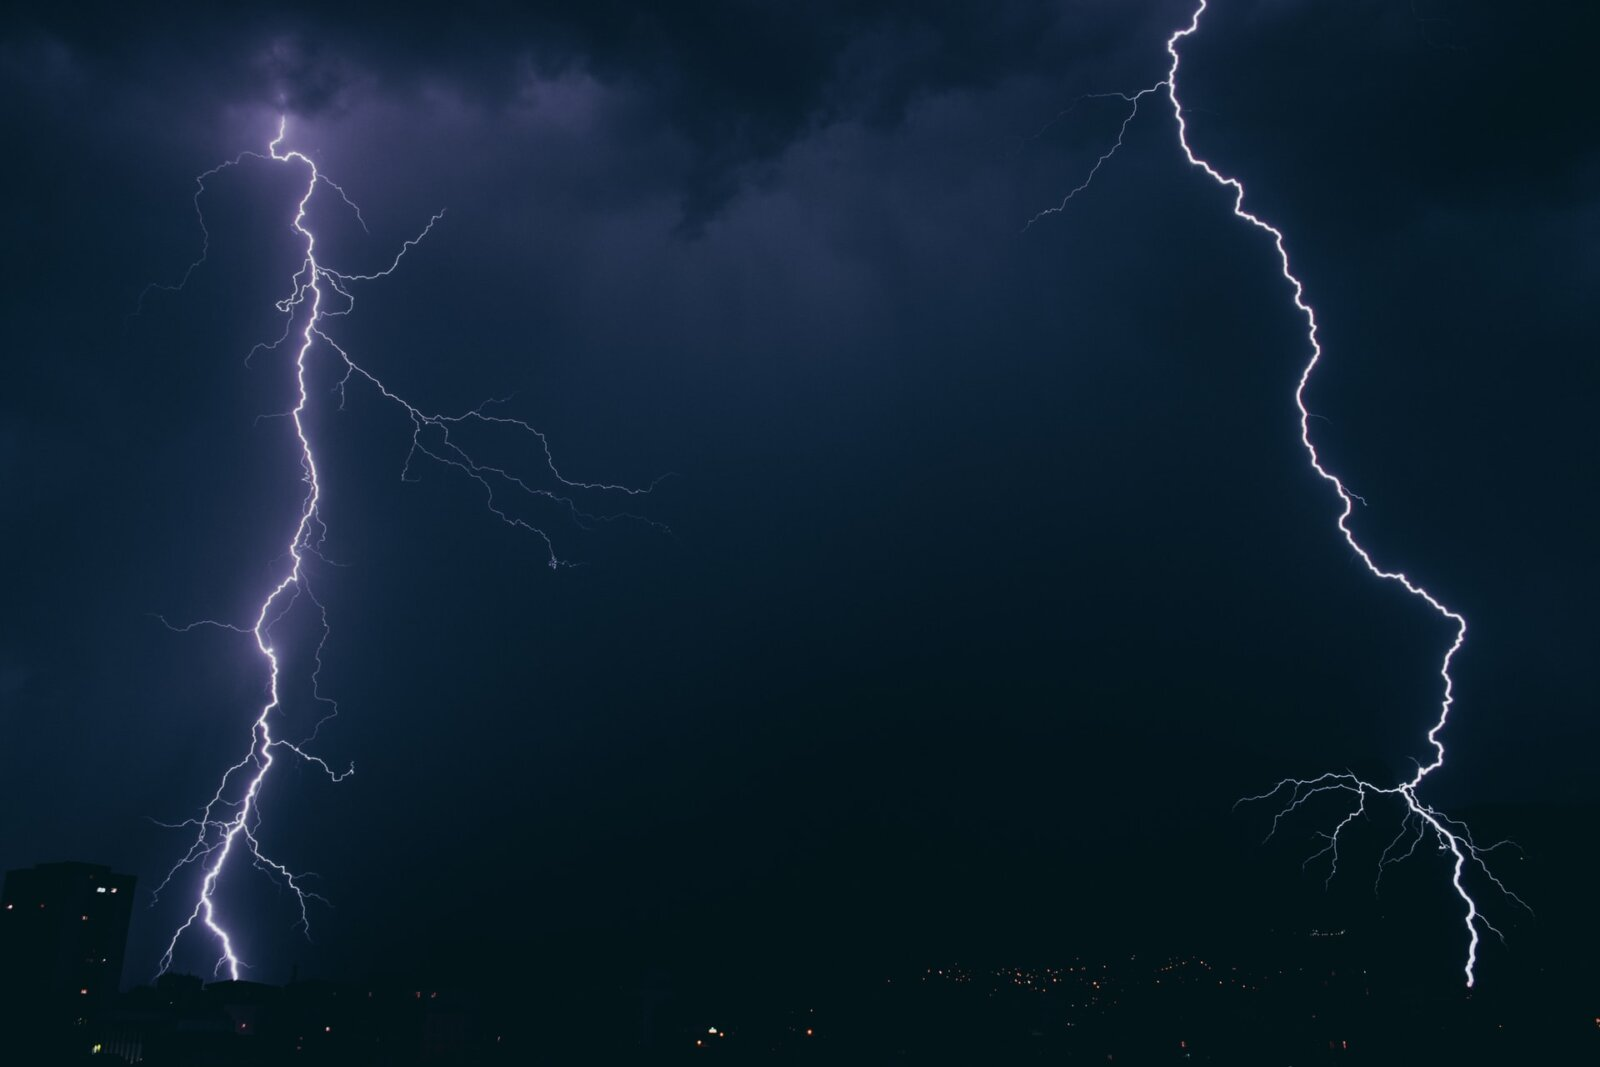 Footage shows Greater Manchester engulfed in biblical thunderstorms last night, The Manc